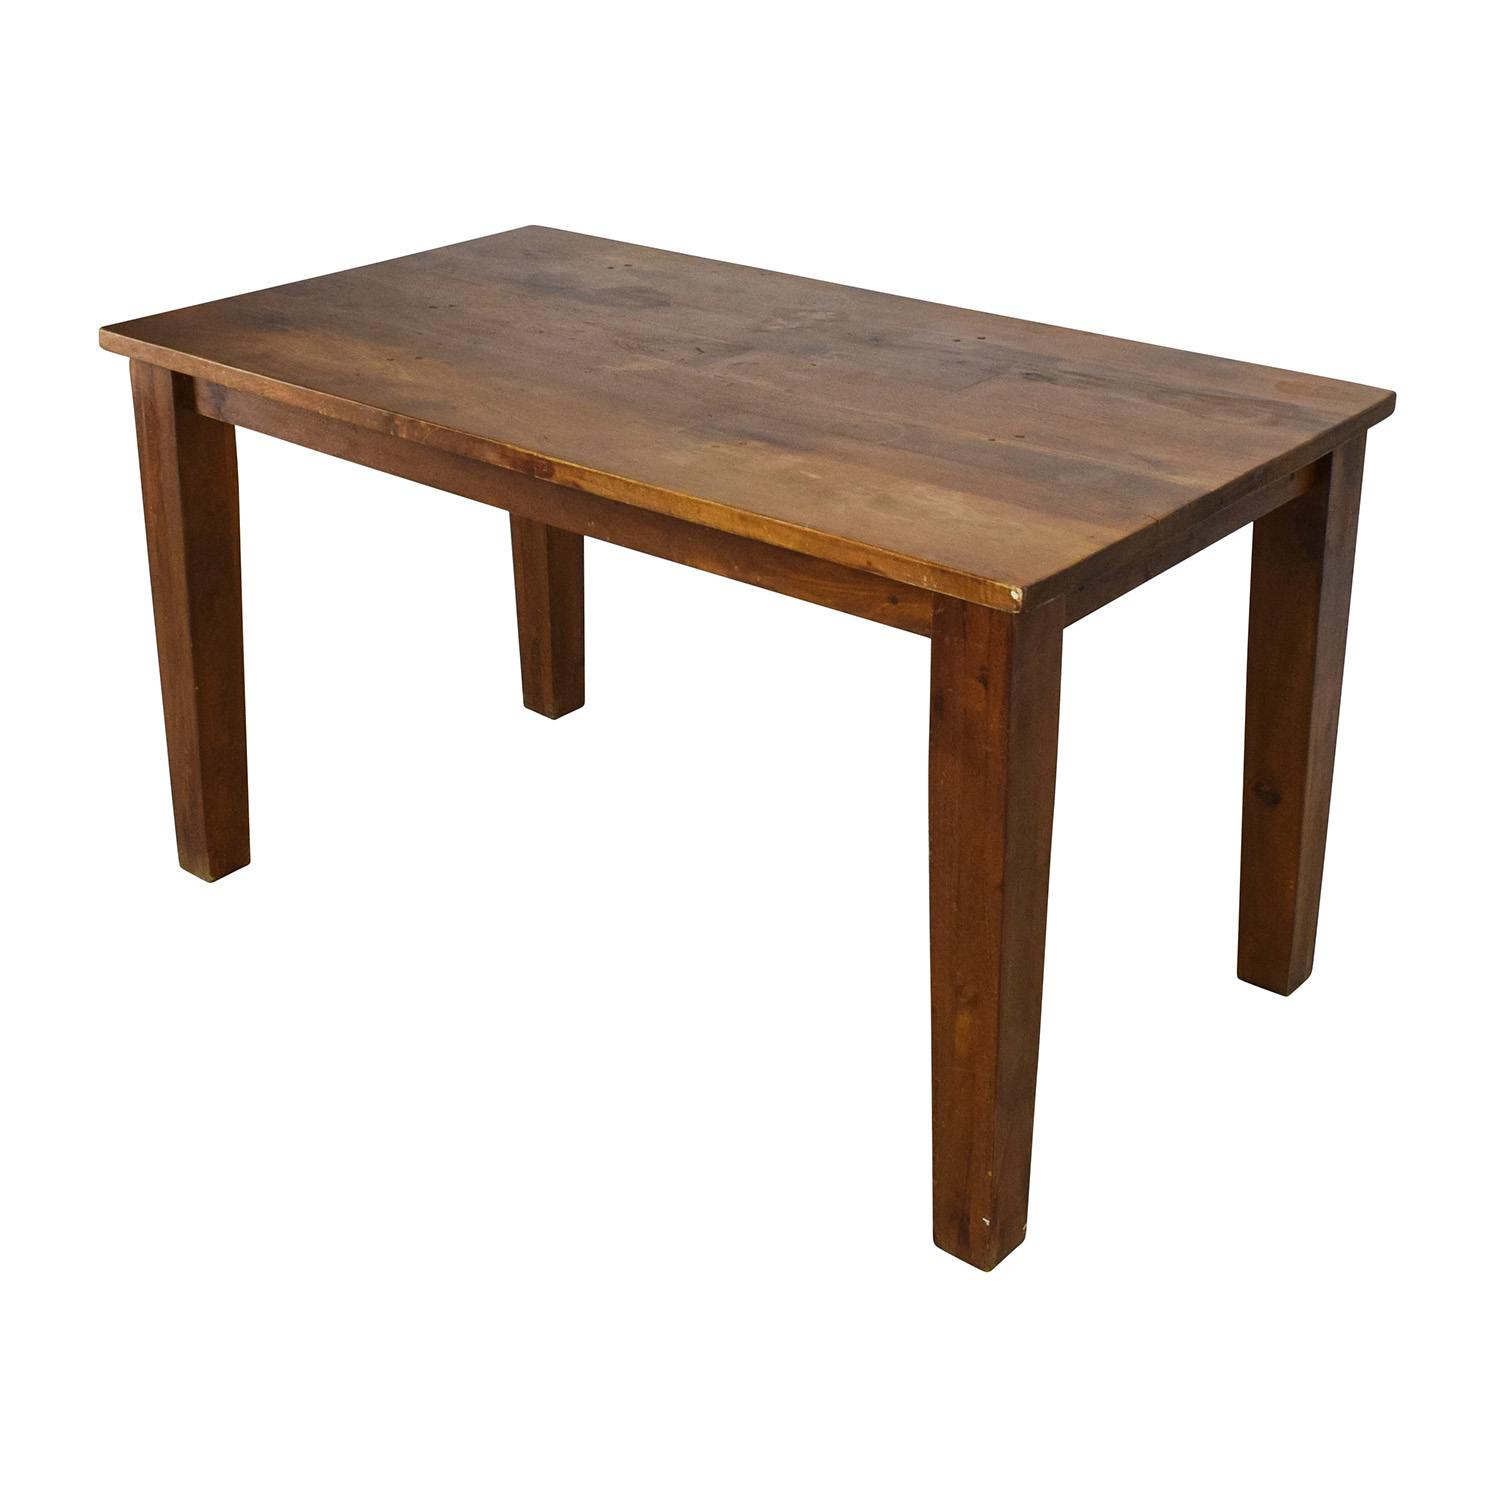 West Elm West Elm Indian Rosewood Dining Table used  71  OFF   West Elm West Elm Indian Rosewood Dining Table   Tables. Marble Dining Table West Elm. Home Design Ideas